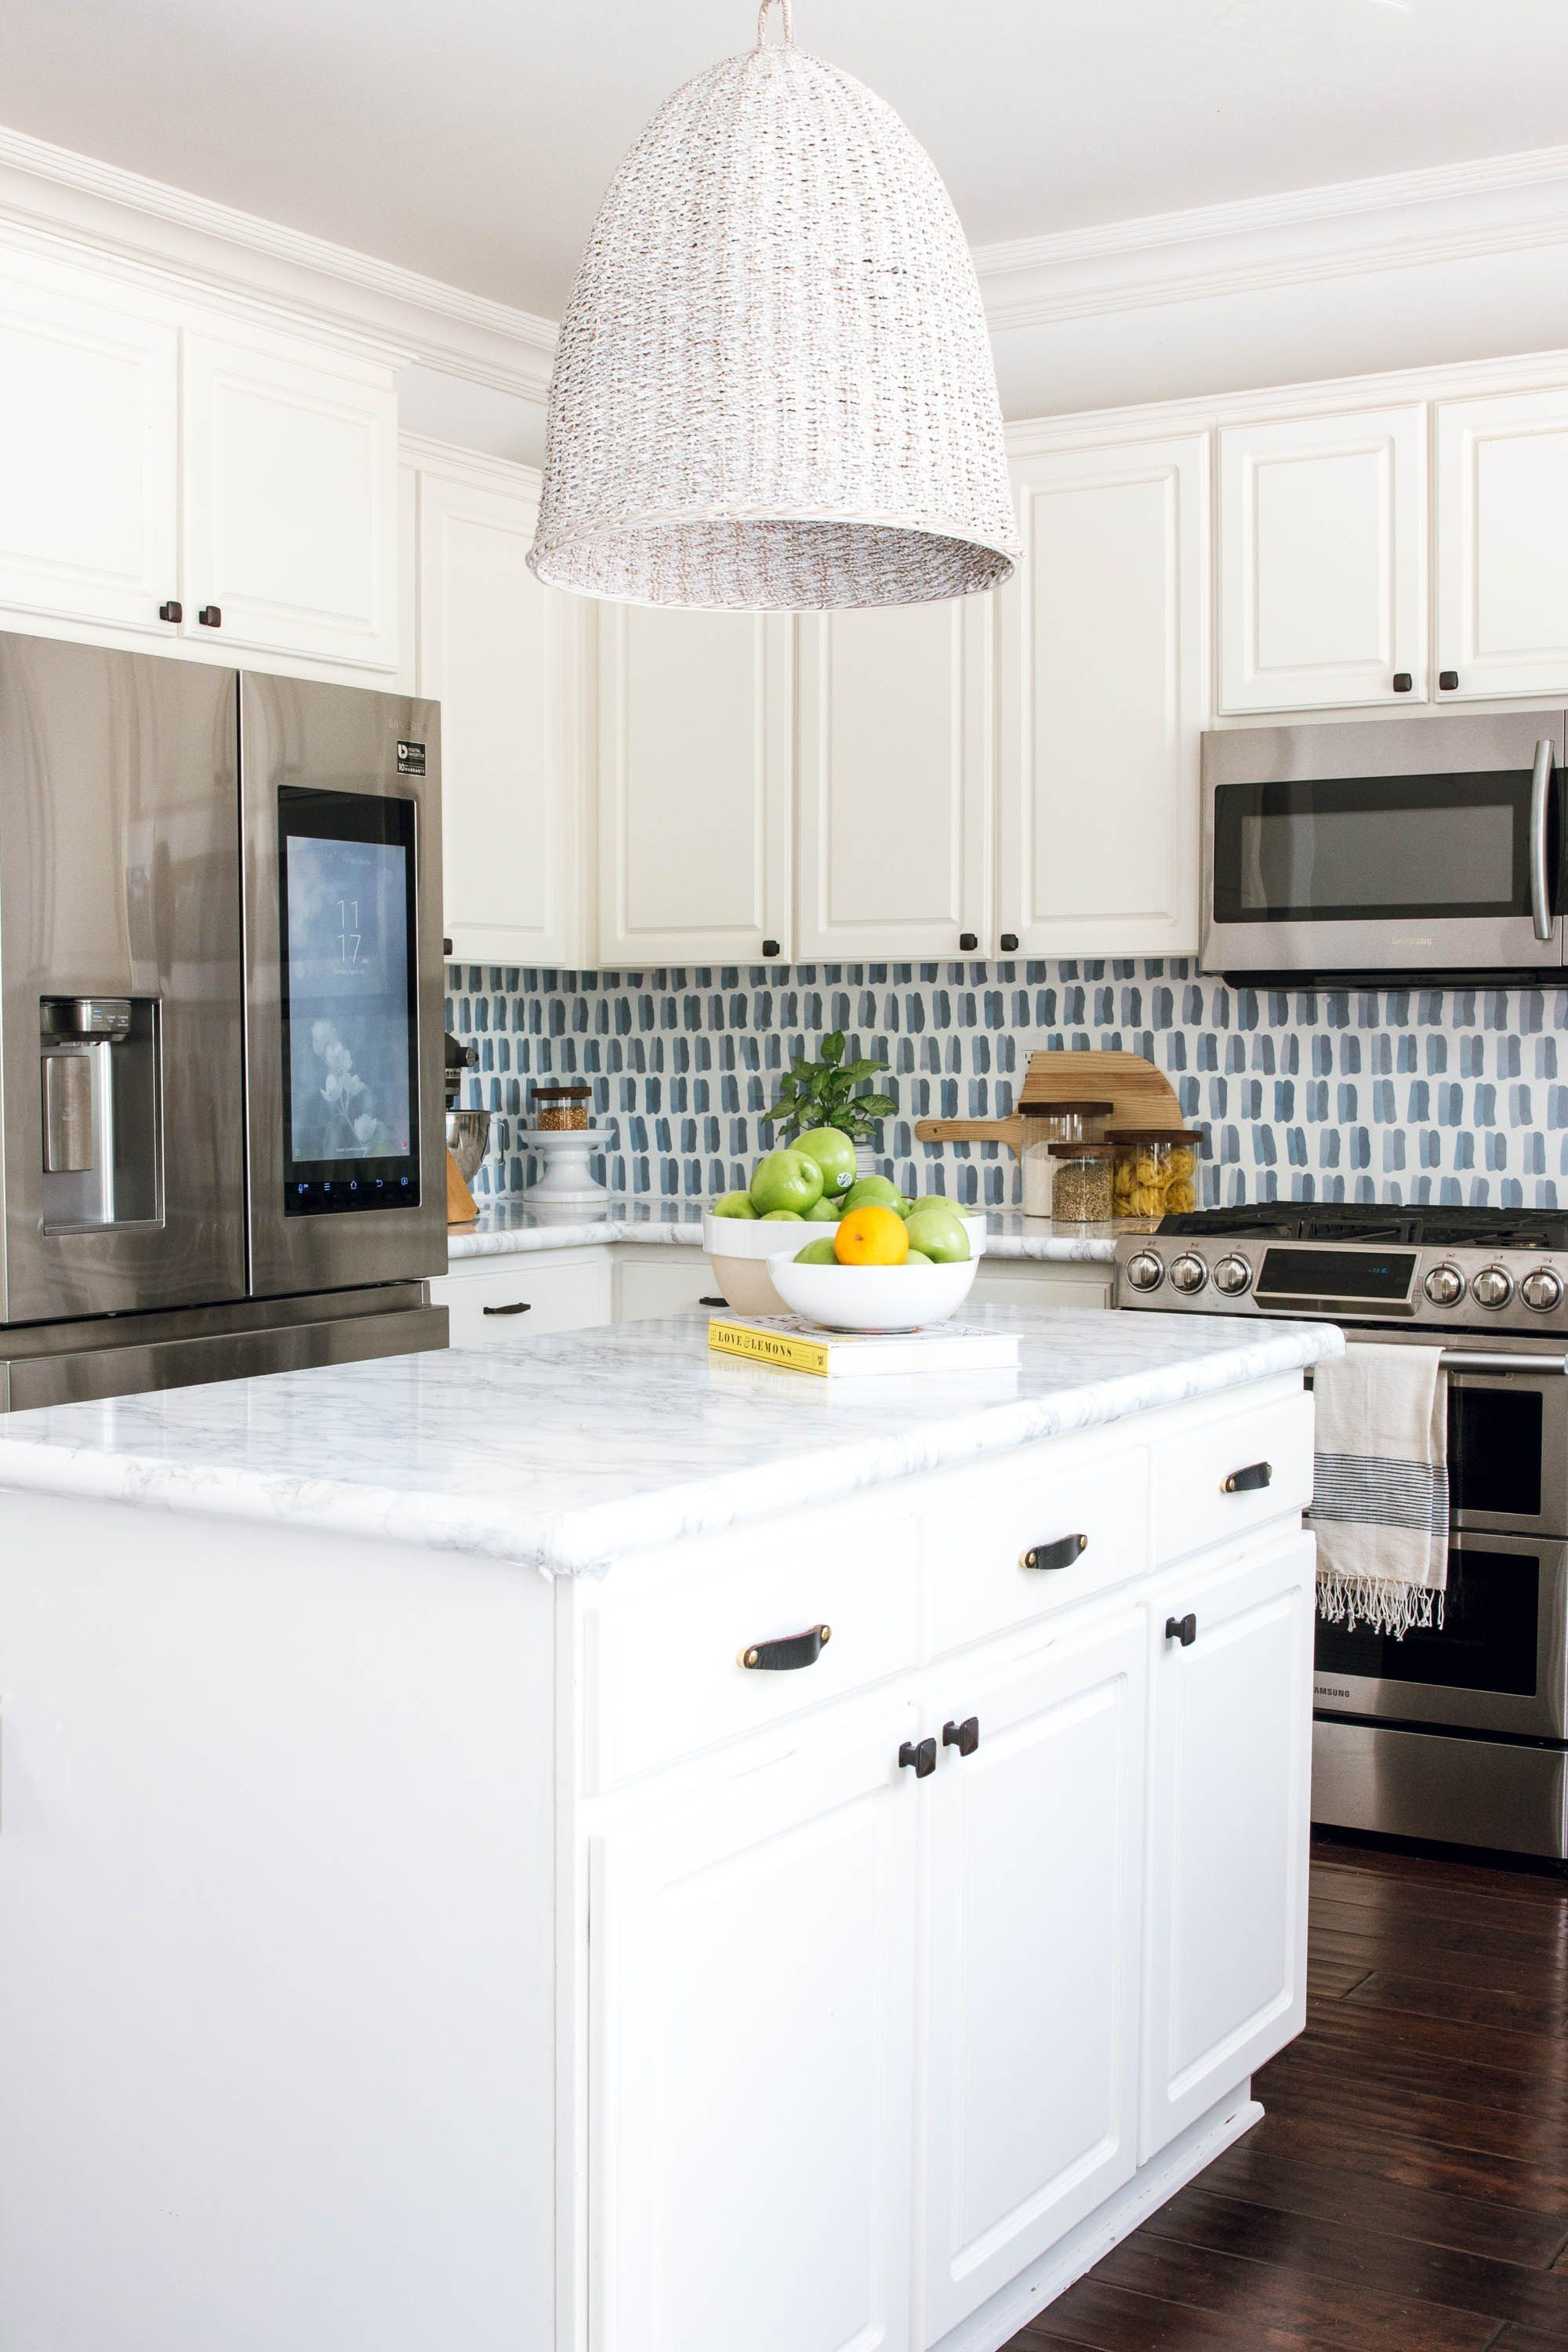 Diy Backsplash Wallpaper Backsplash Wallpaper Kitchen Design